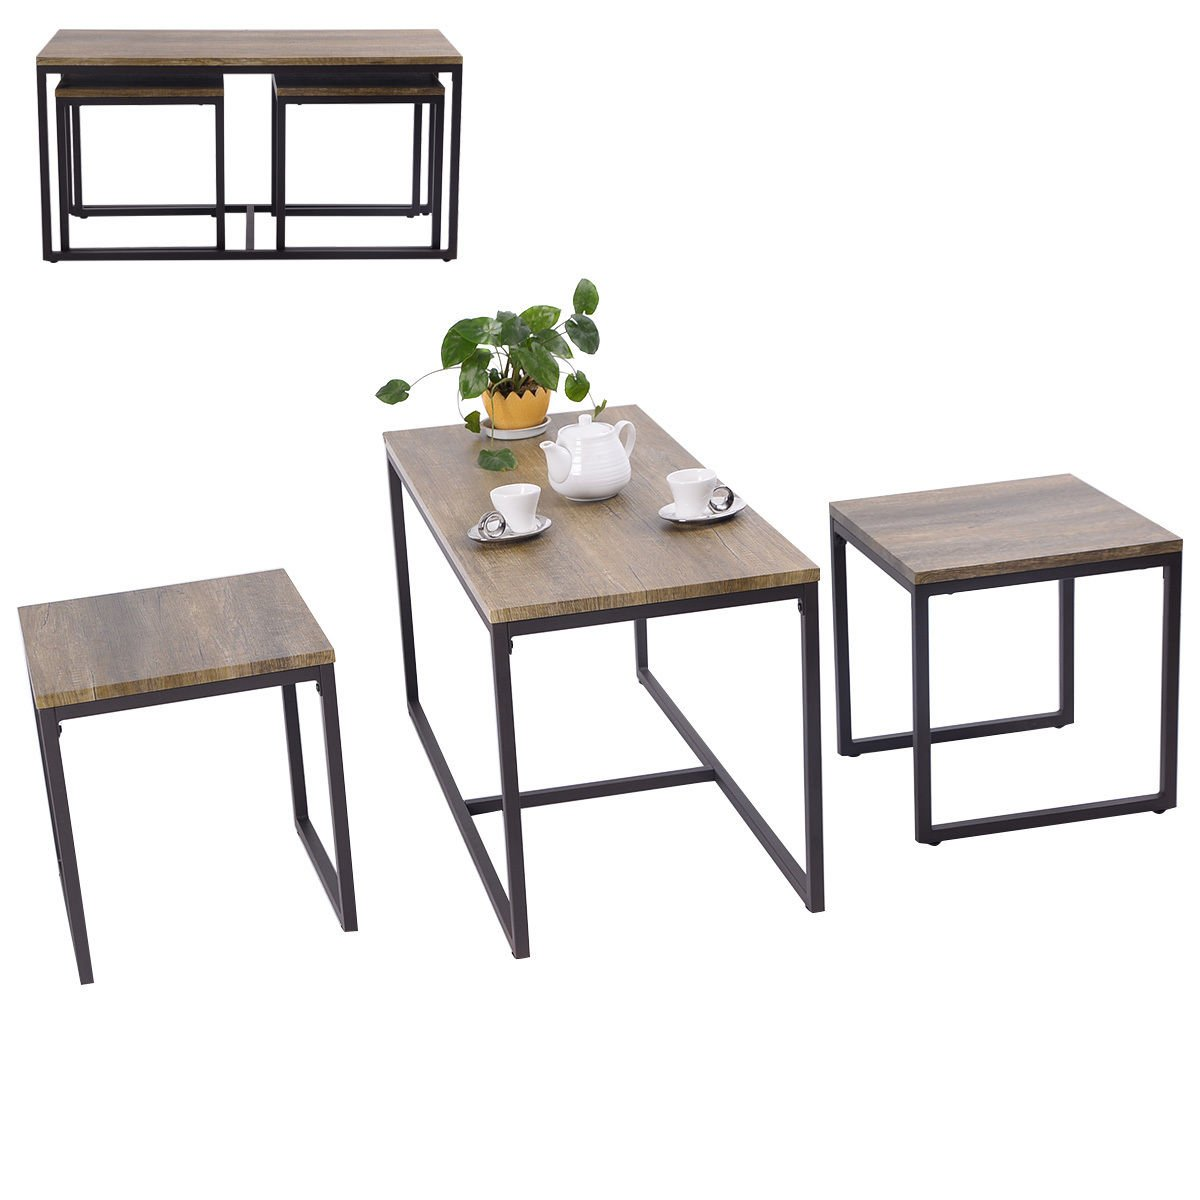 nesting end tables living room. Amazon com  Giantex 3 Piece Nesting Coffee End Table Set Wood Modern Living Room Furniture Decor Kitchen Dining